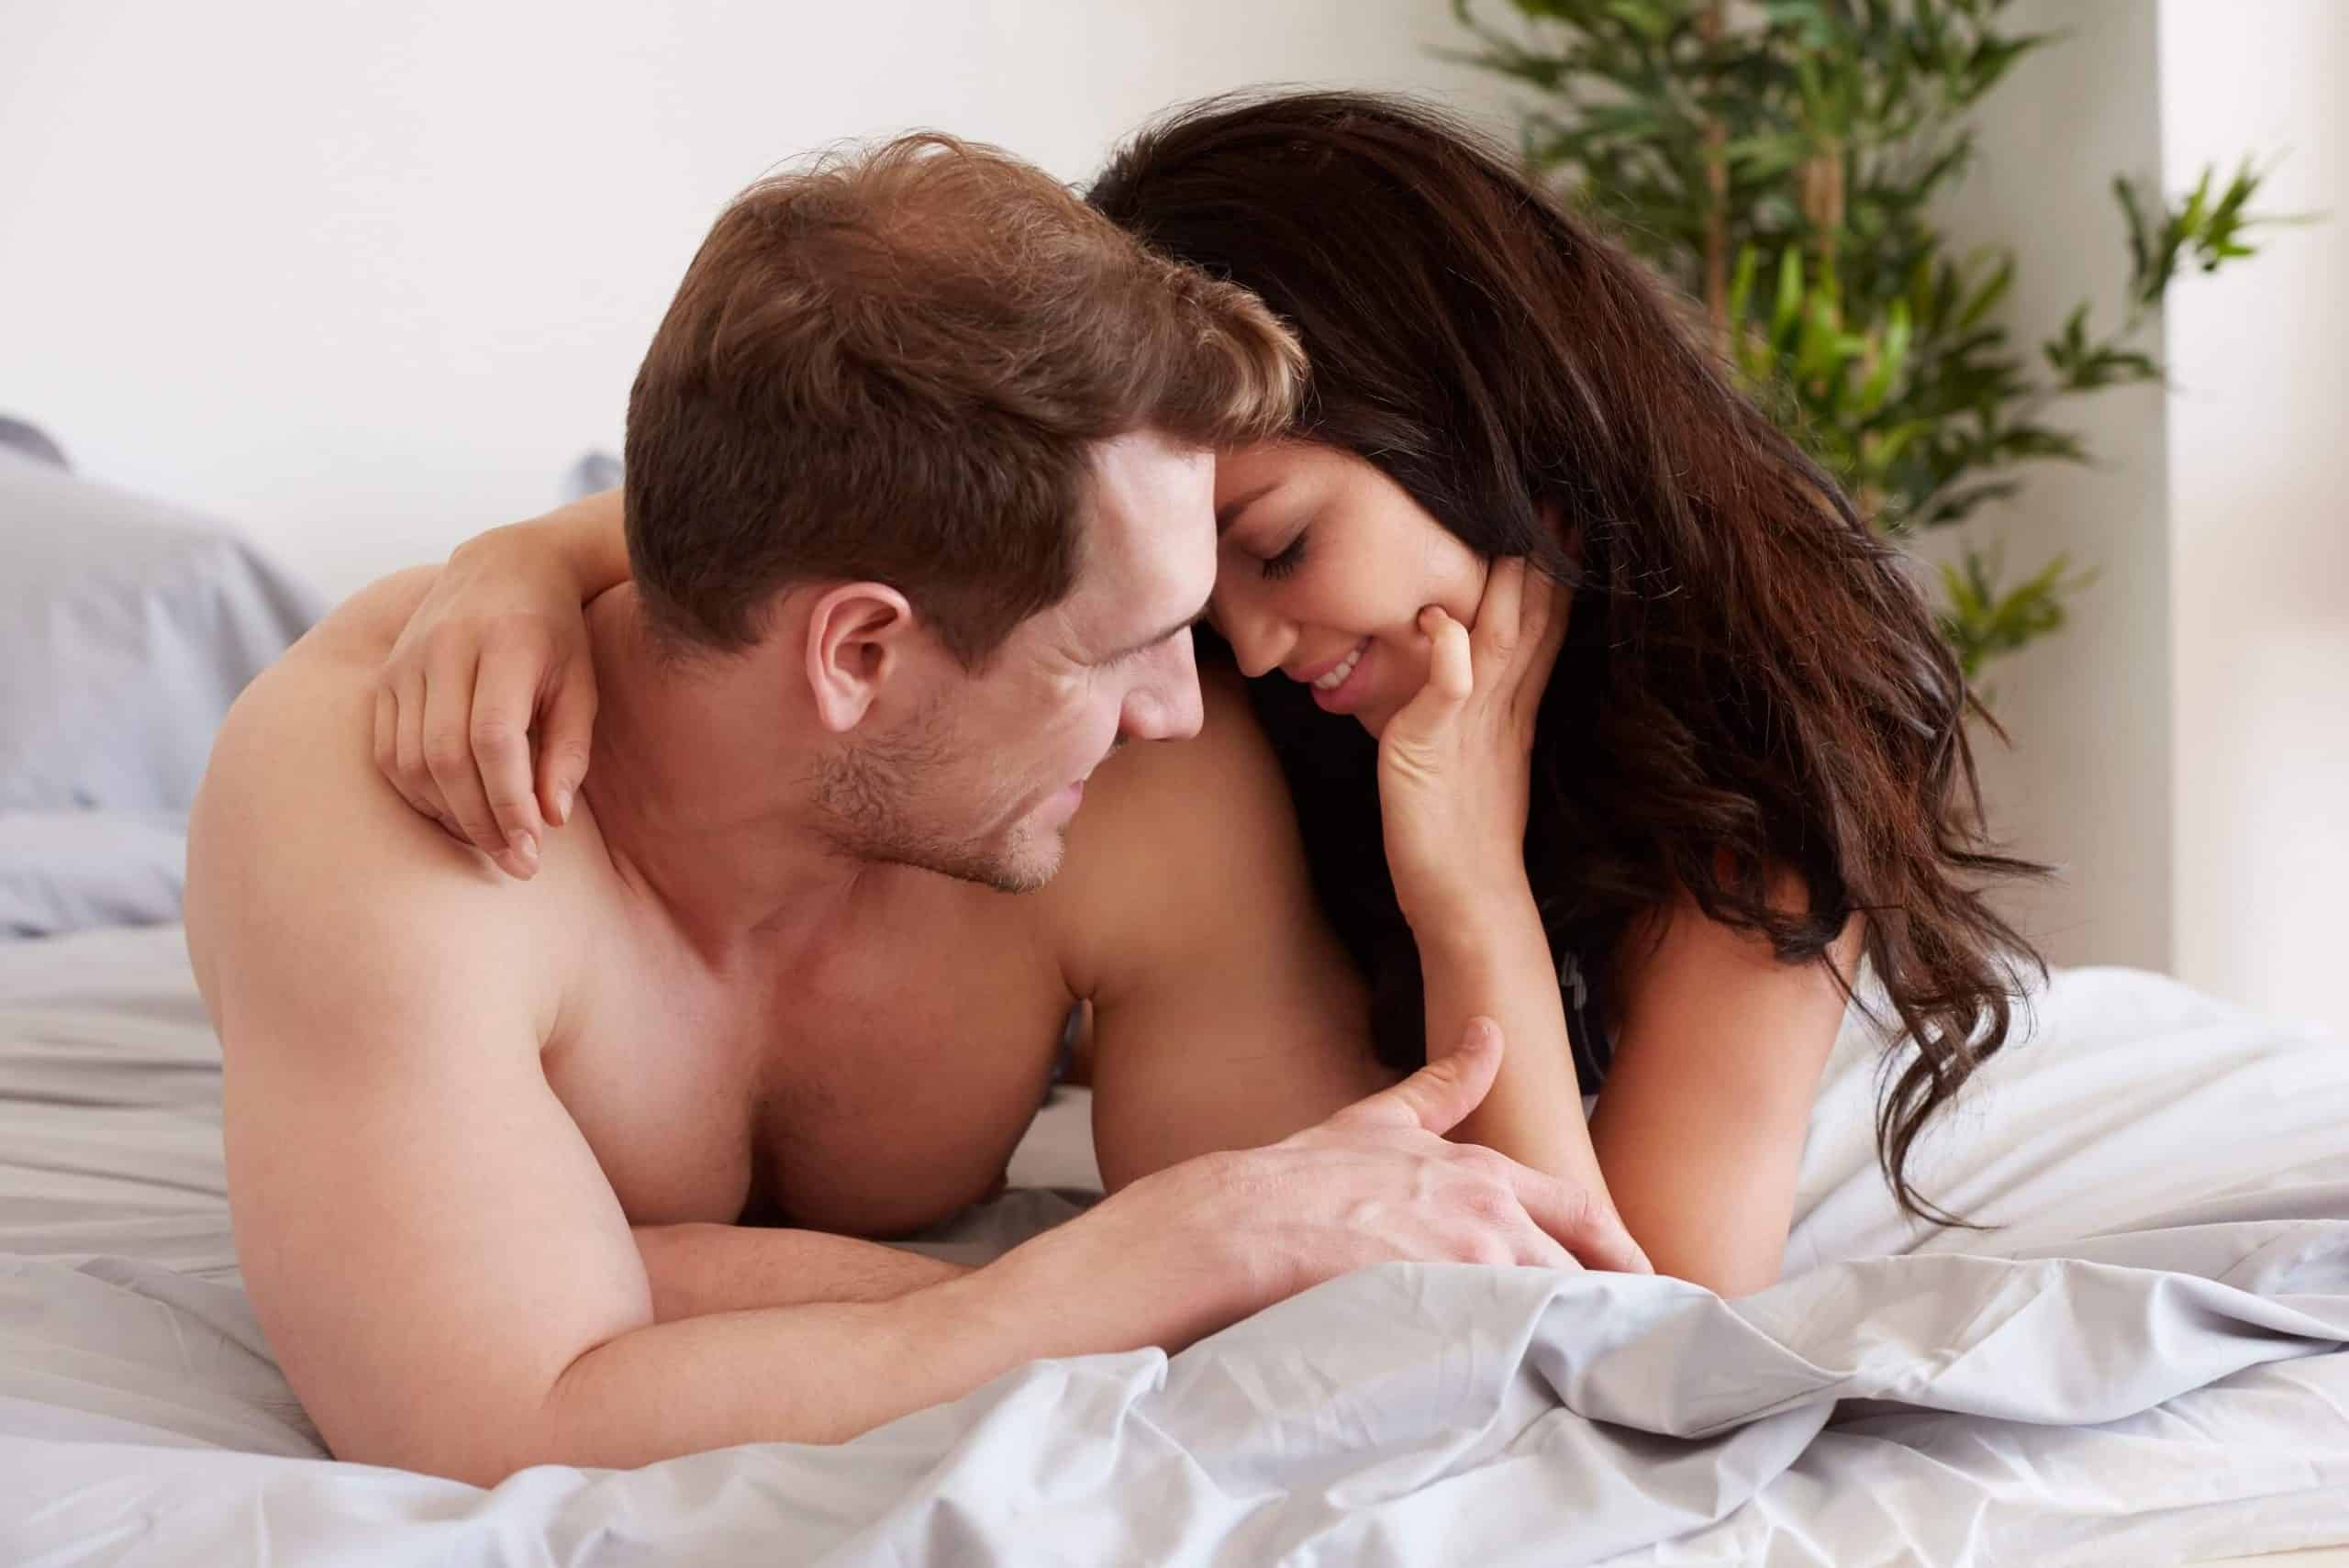 couple intimate on bed